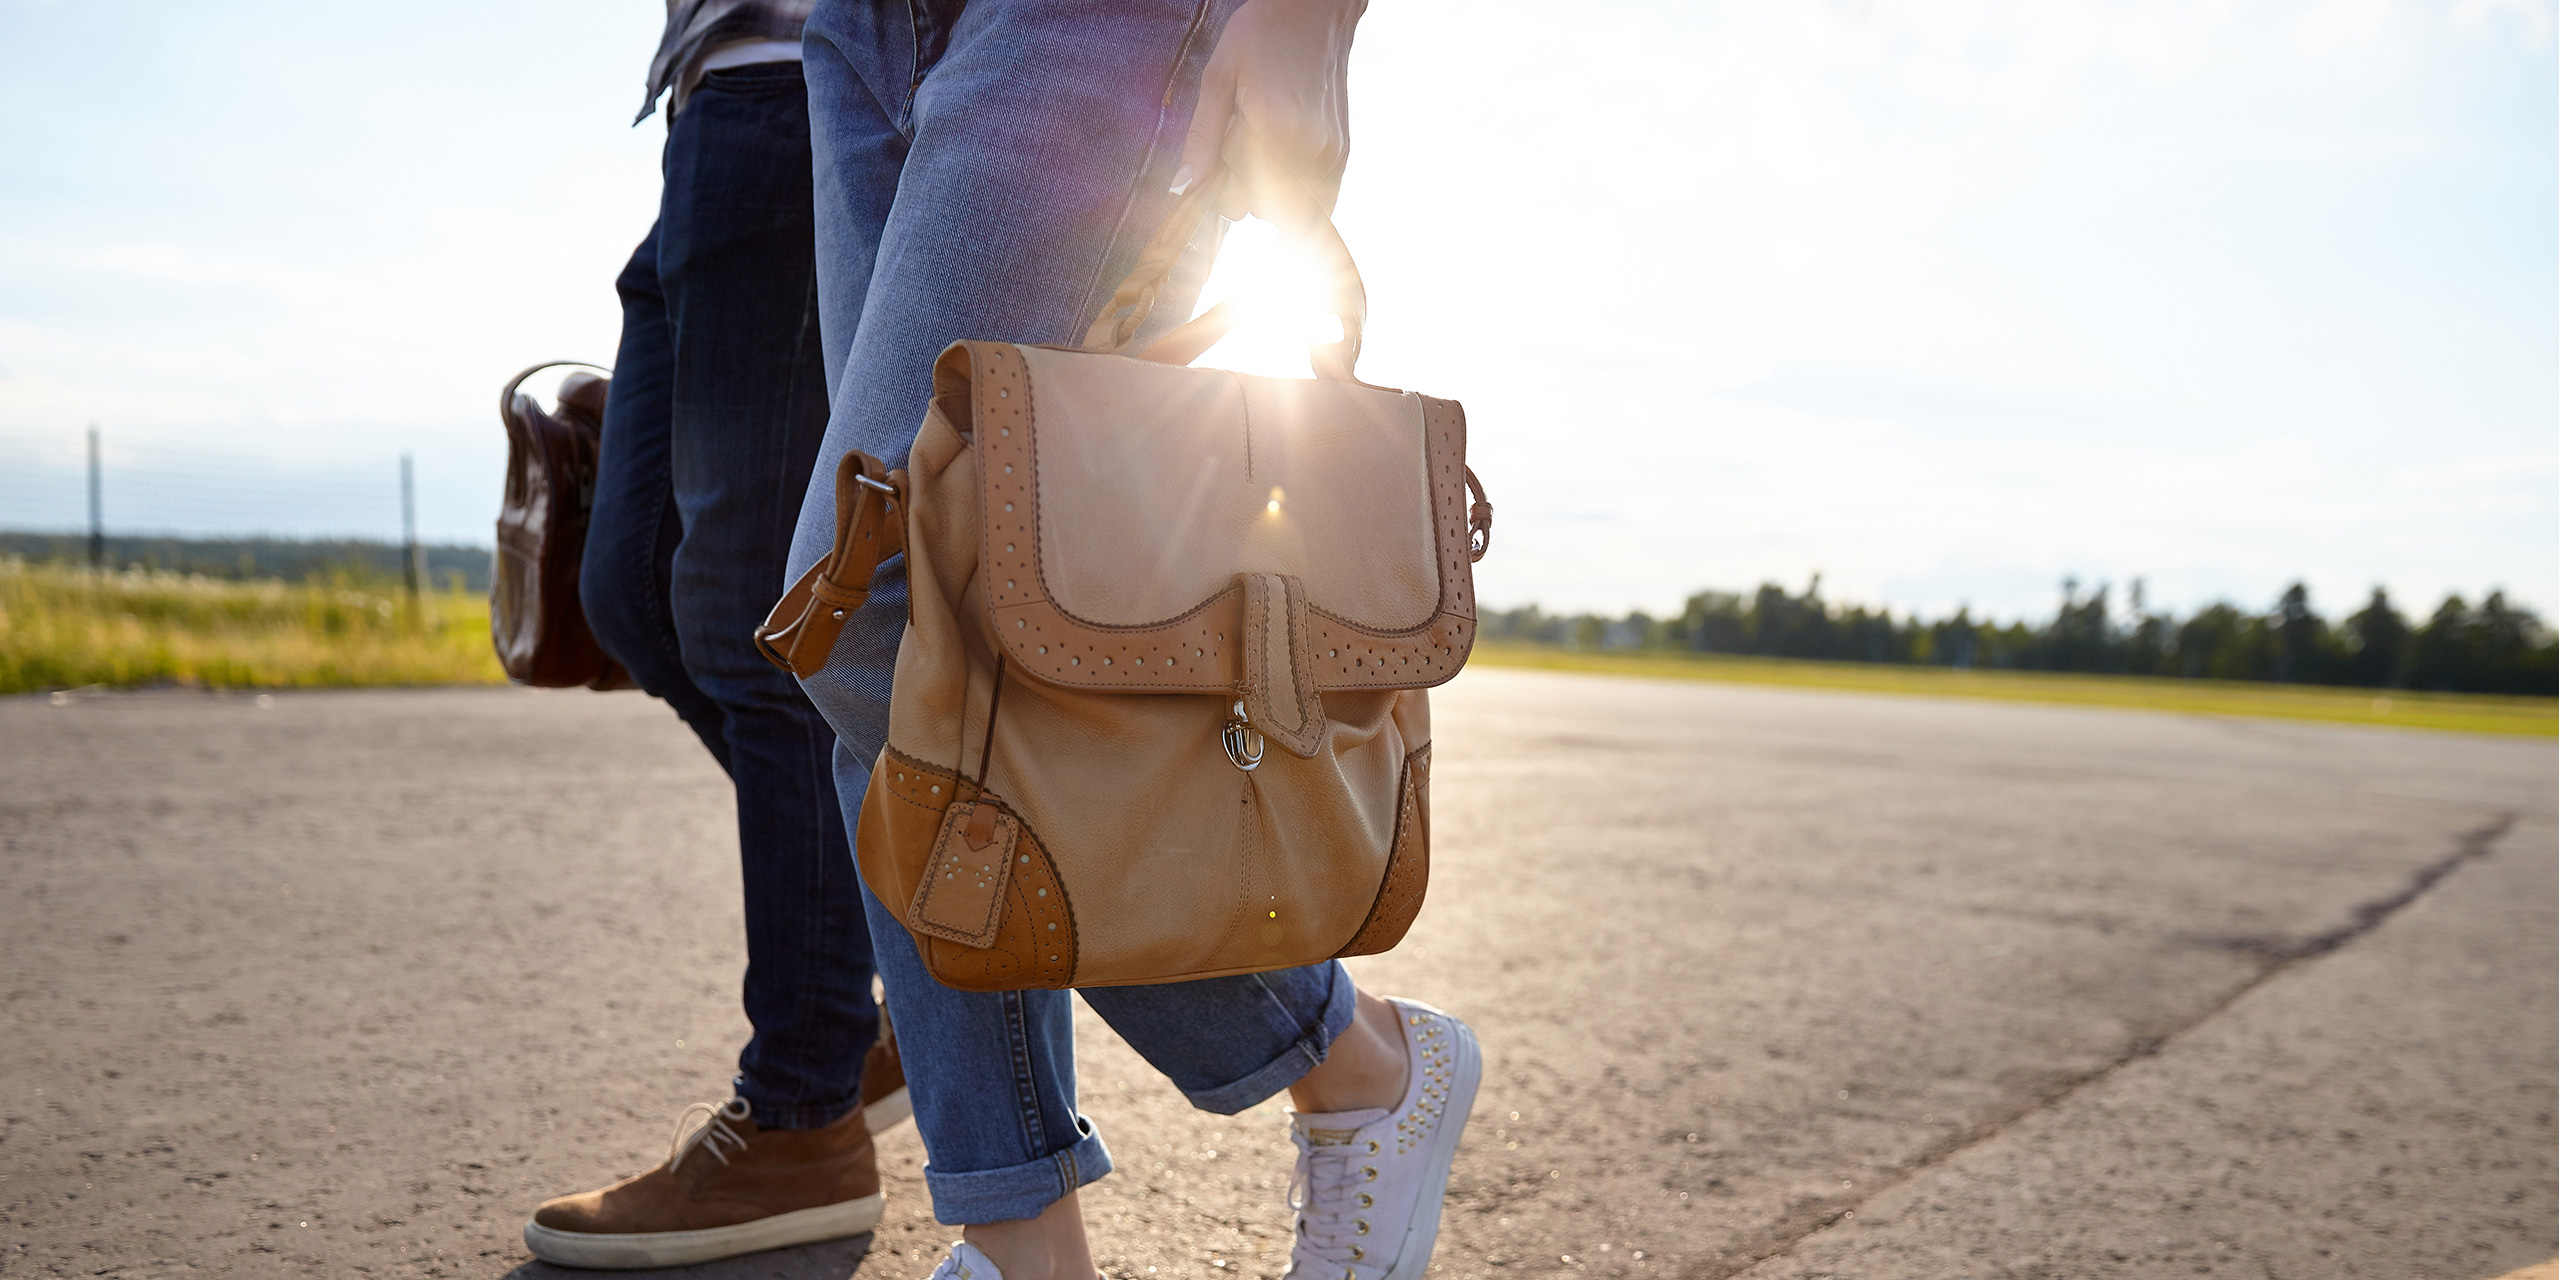 couple walking carrying travel bag runway; Courtesy begalphoto/Shutterstock